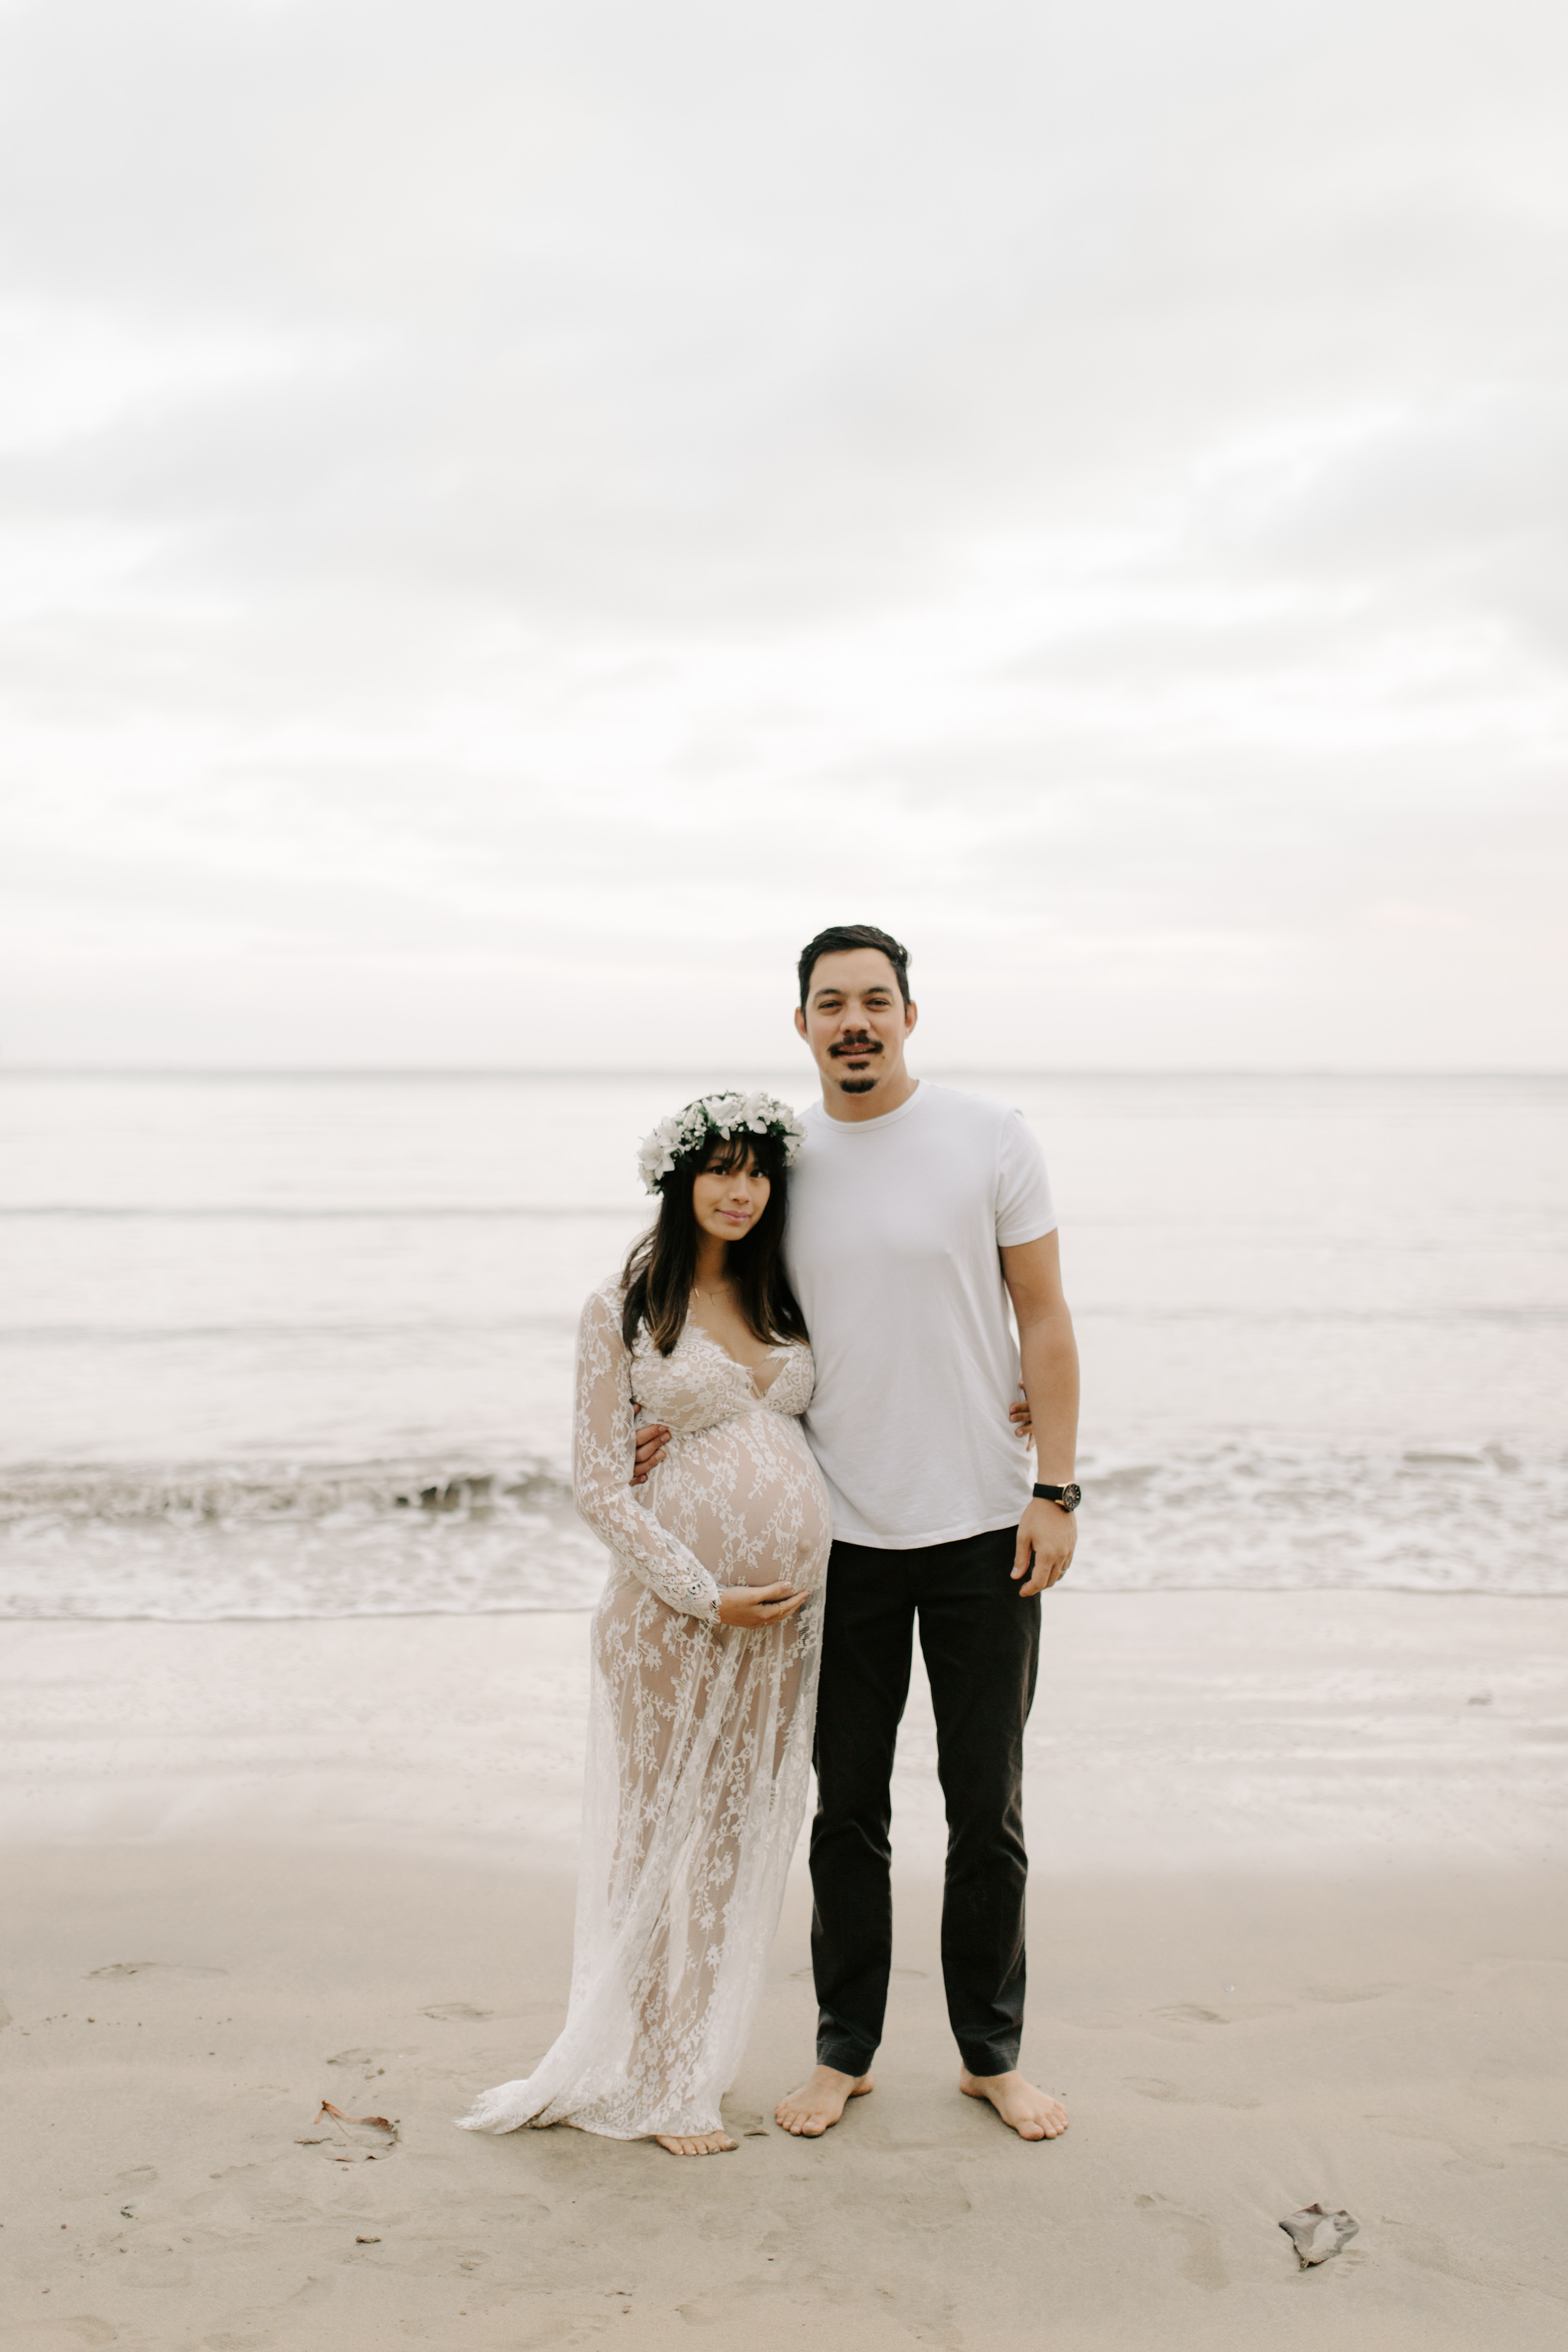 Gorgeous Hawaii Maternity Photos by Oahu Maternity Photographer Desiree Leilani